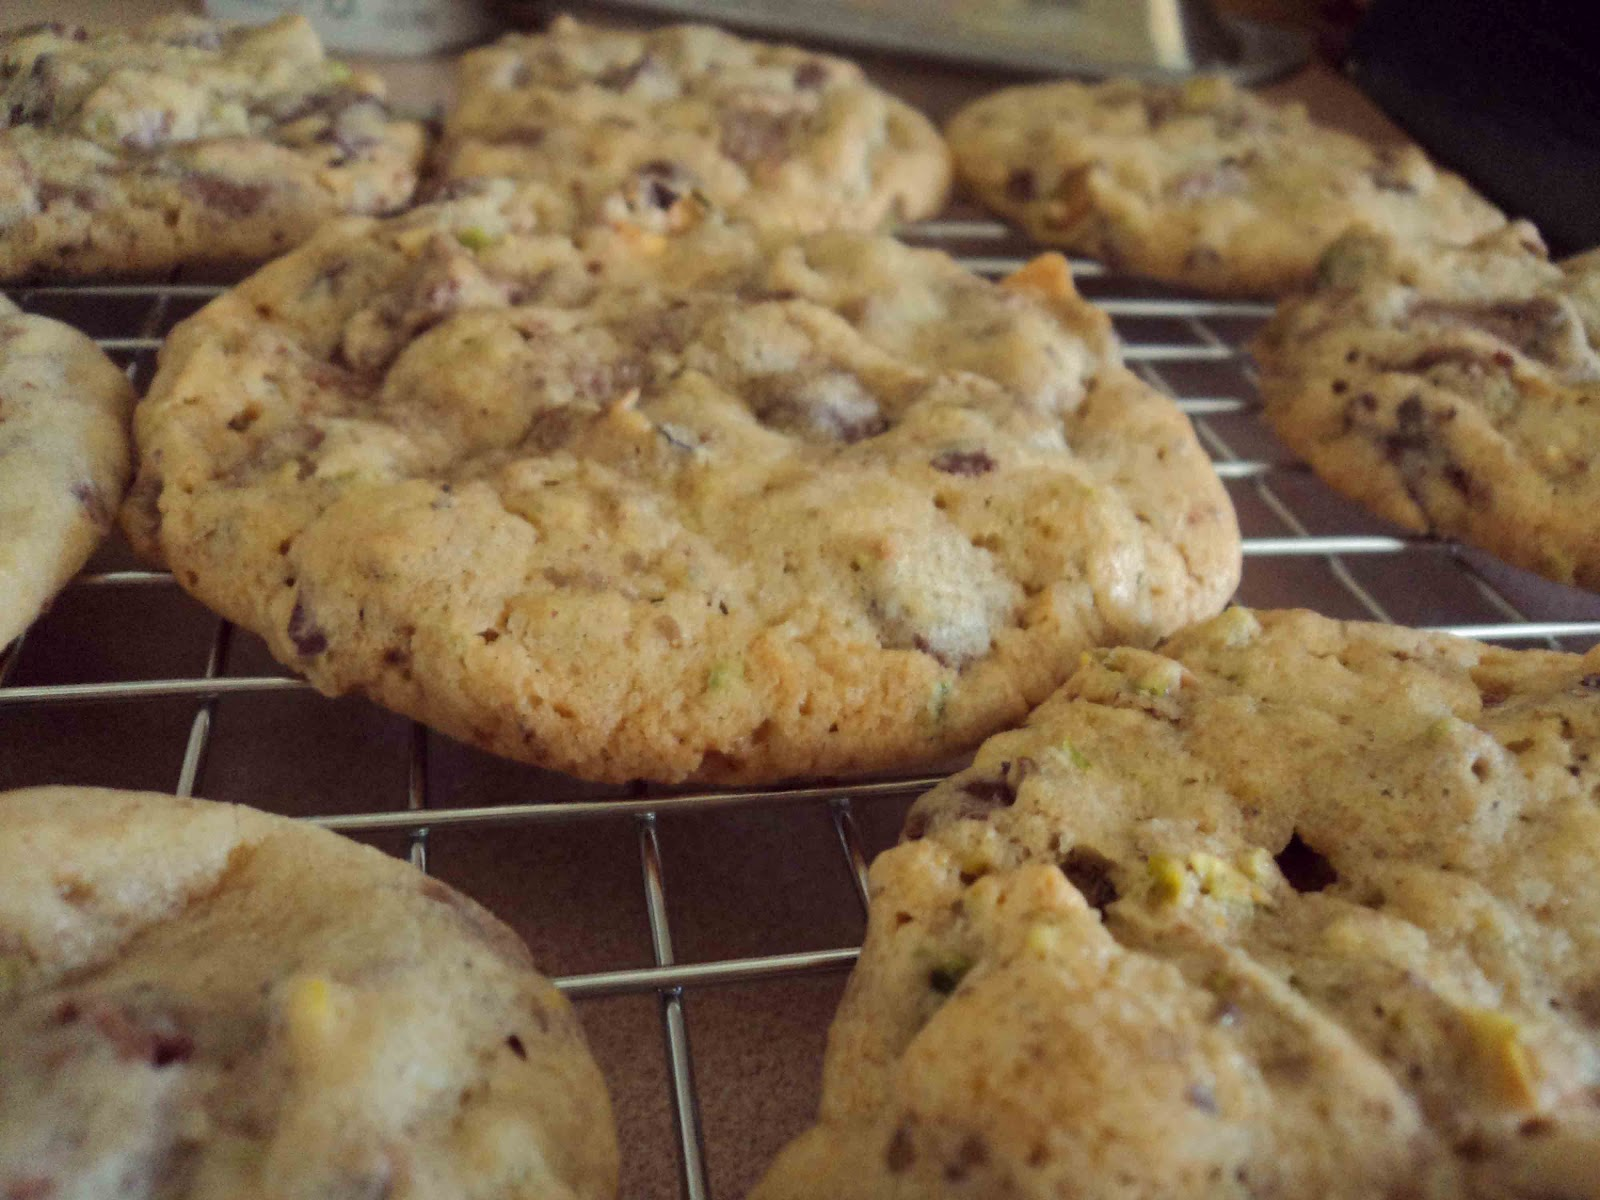 ... & Salty Southern Comfort: Triple Chocolate Chunk & Pistachio Cookies